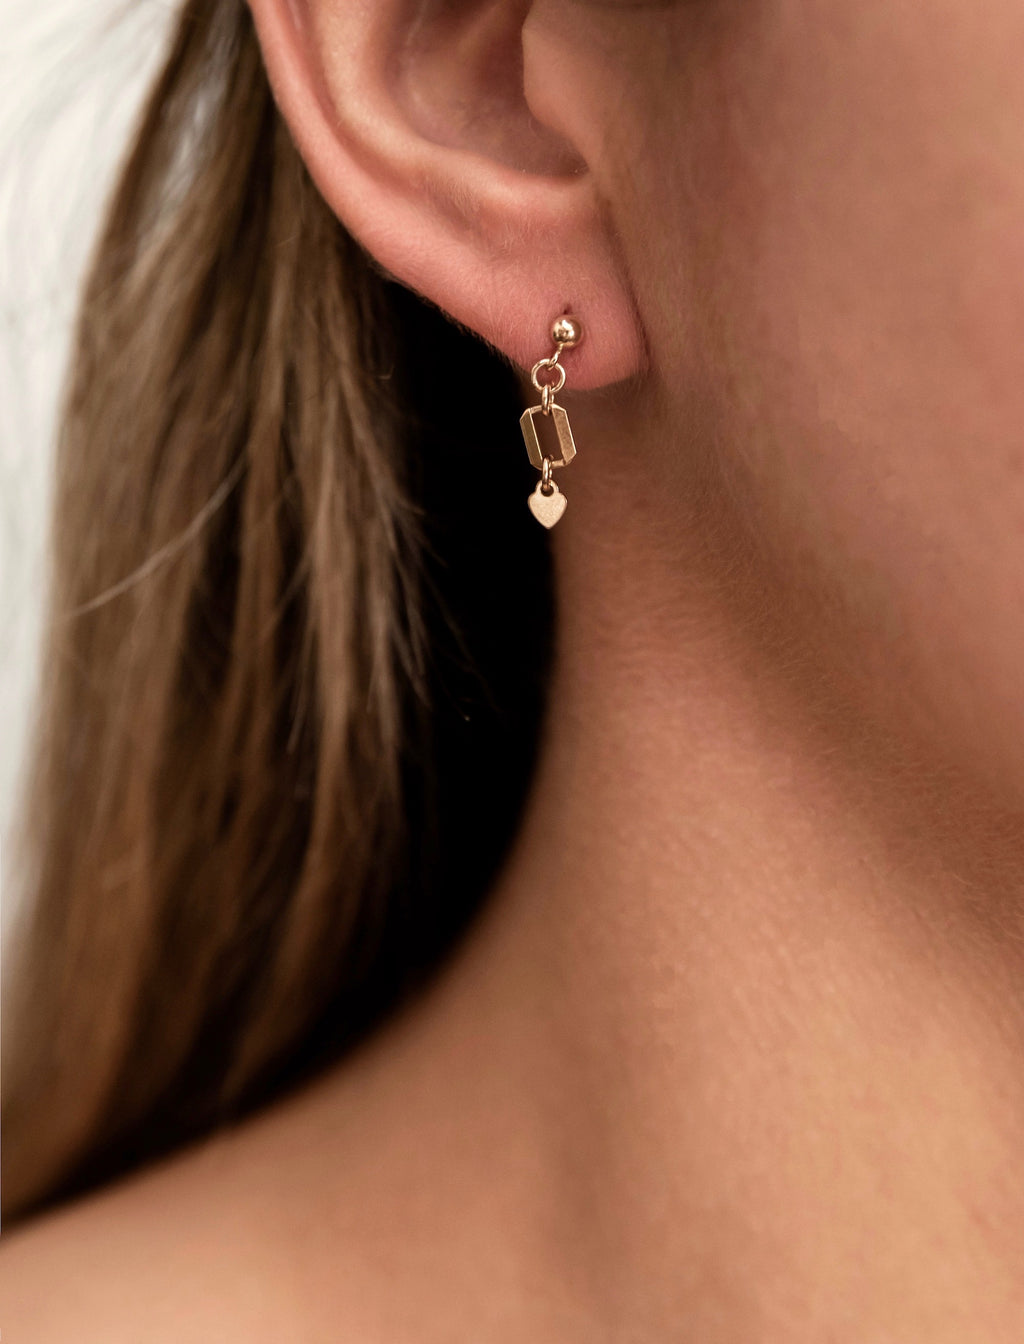 The Mini Bondi earrings